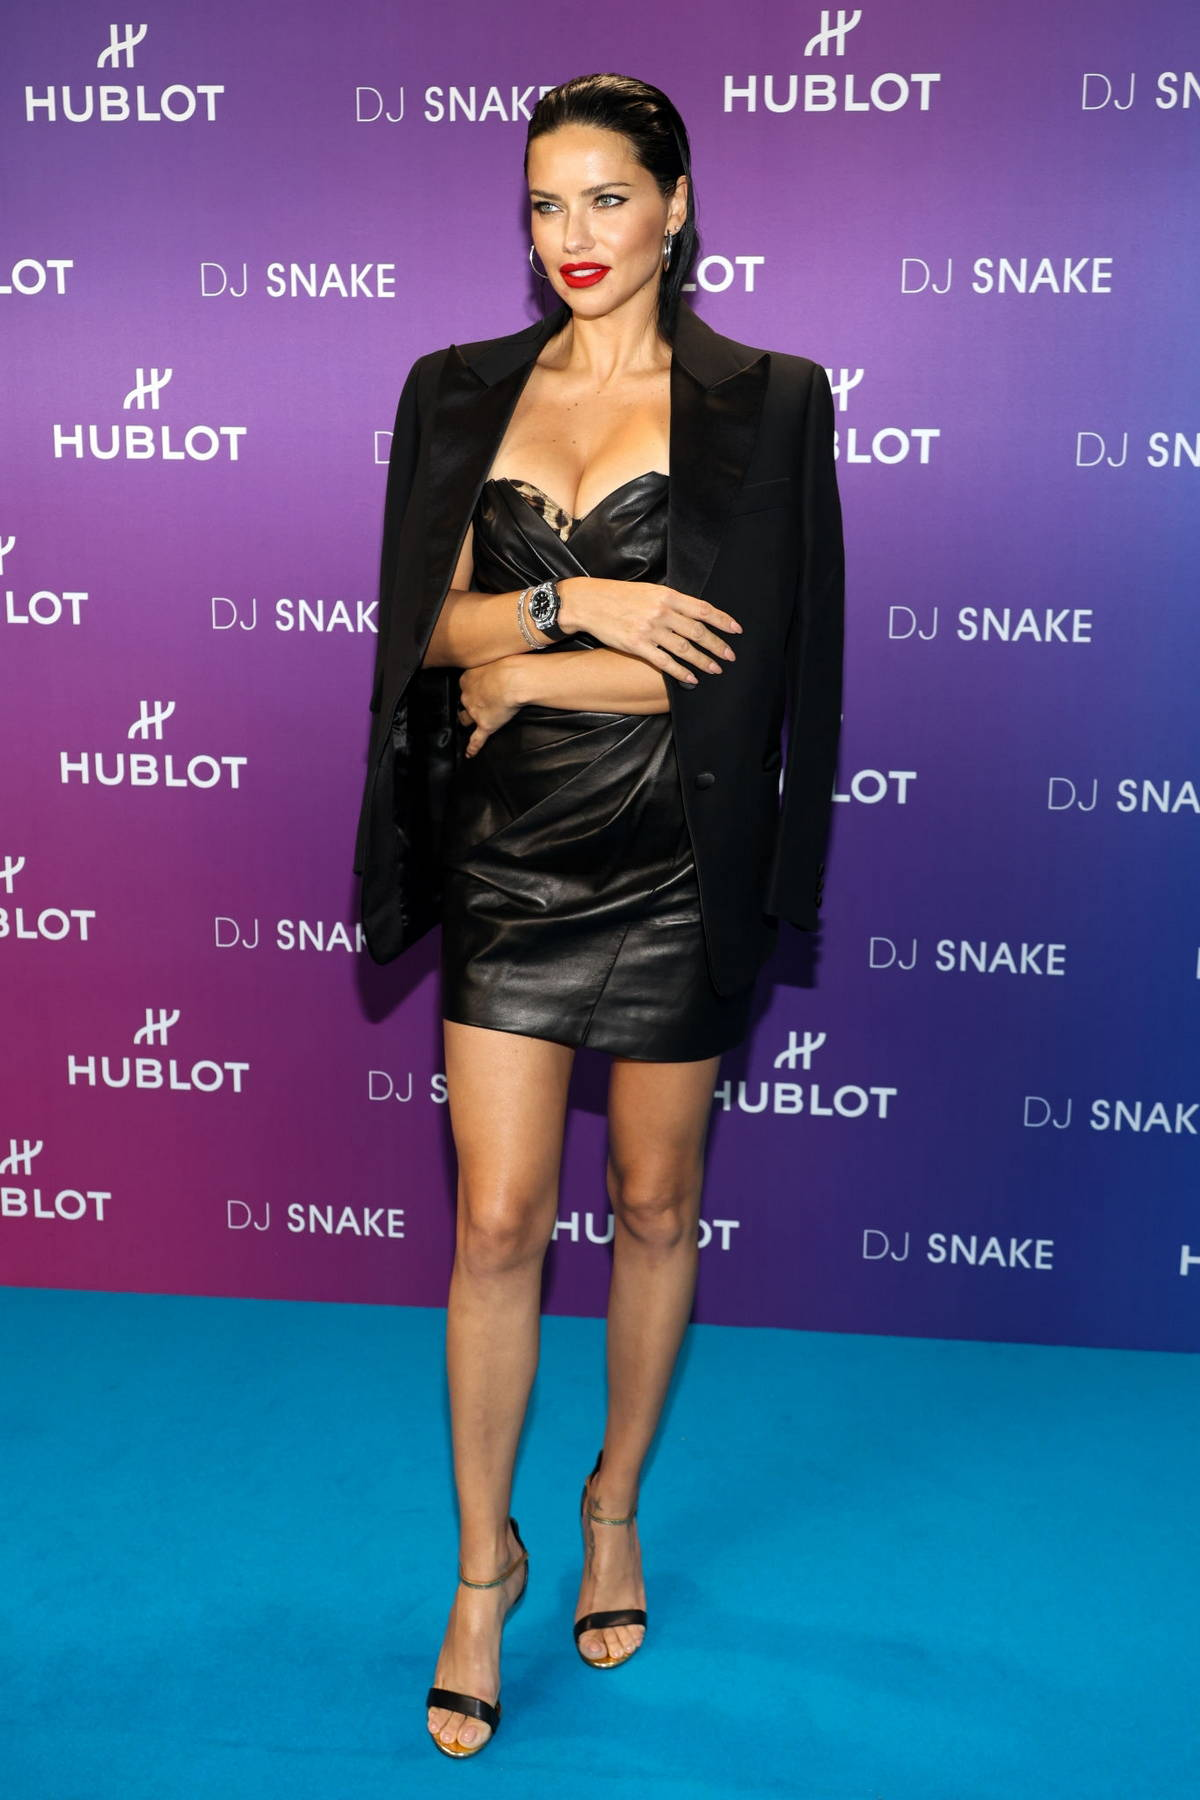 Adriana Lima attends the 'Hublot X DJ Snake' party at AccorHotels Arena in Paris, France